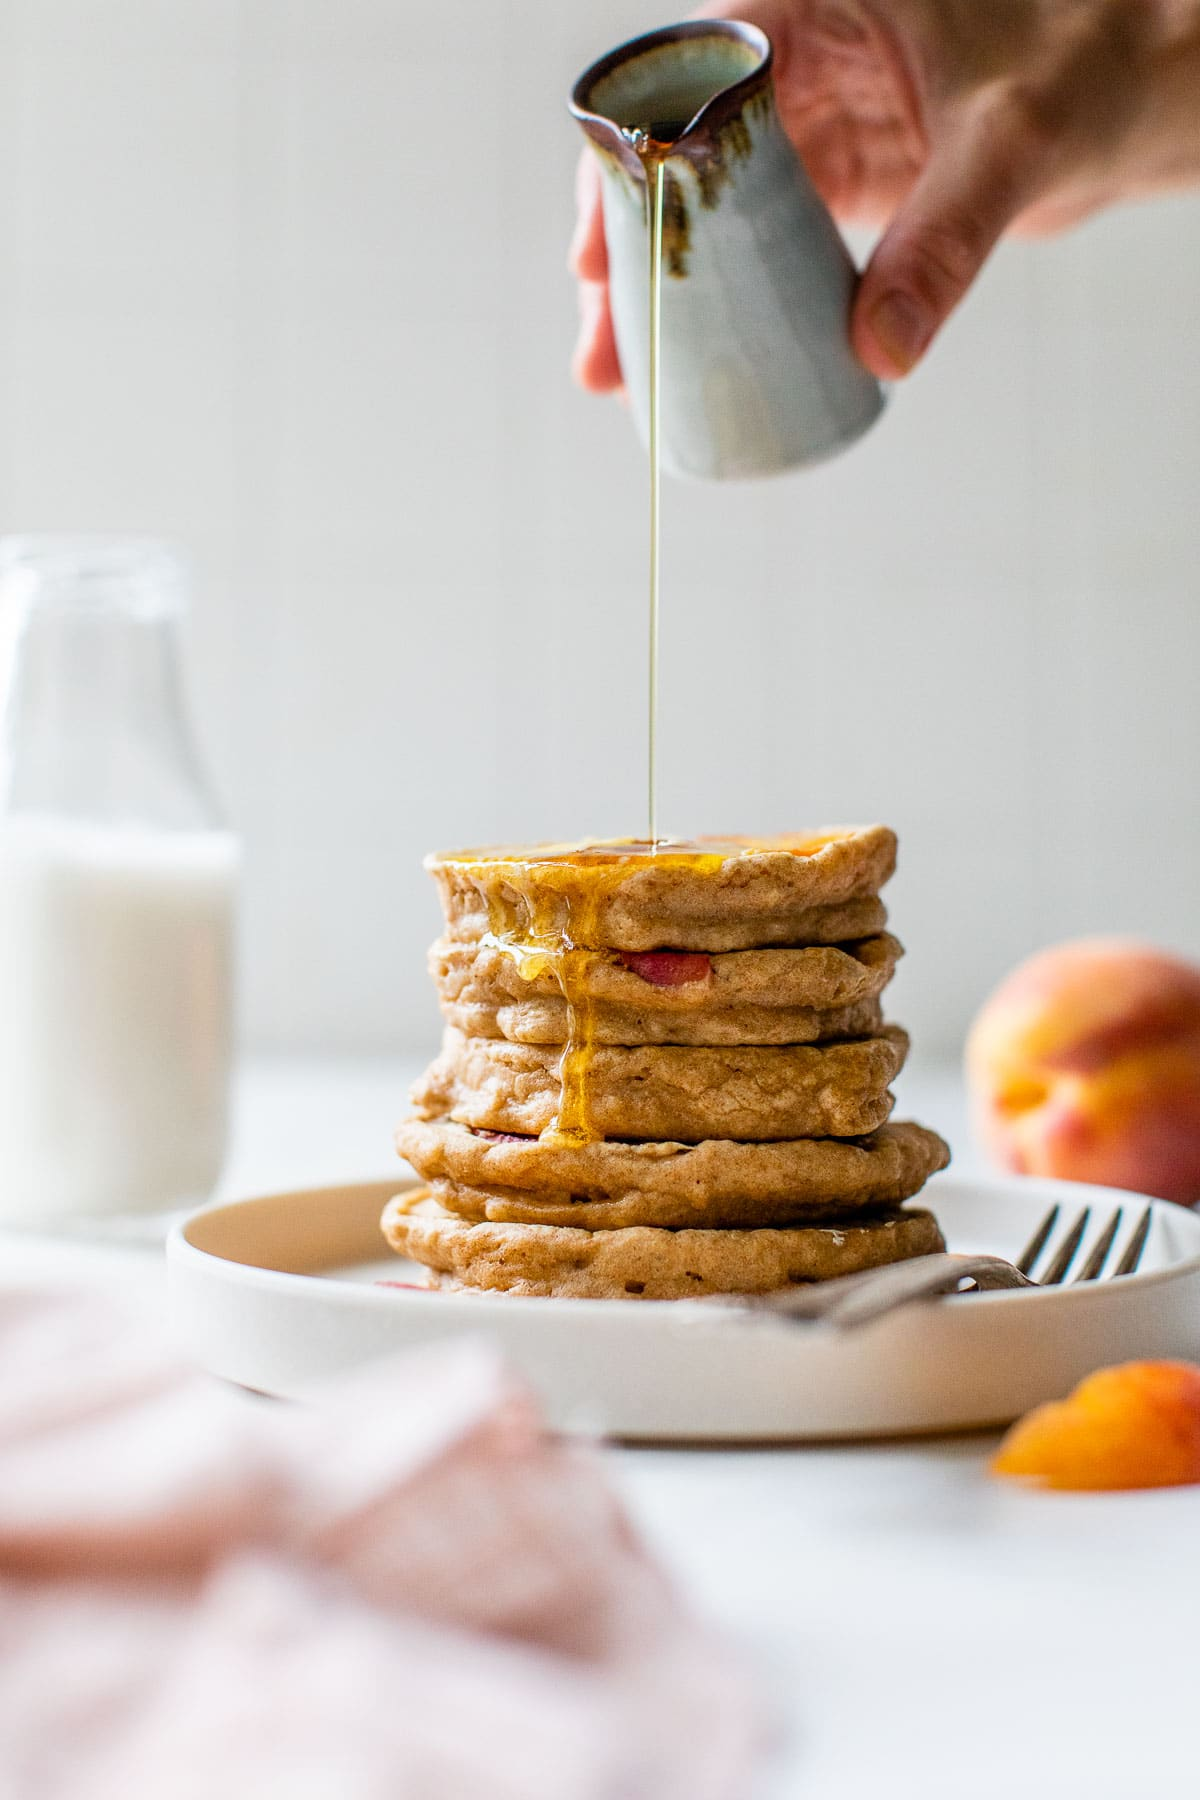 Syrup pouring onto a stack of fresh peach pancakes